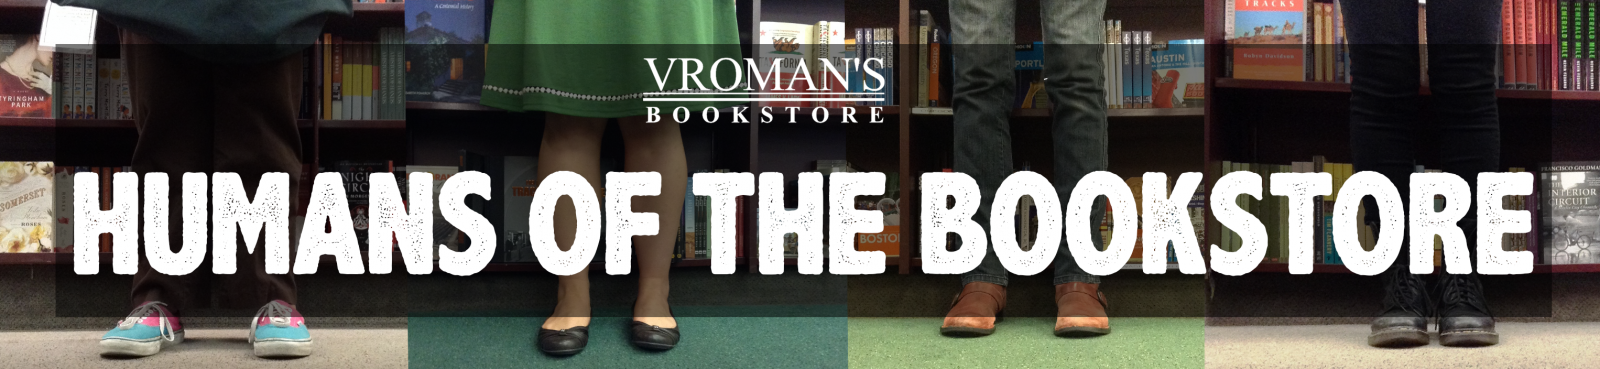 Humans of the Bookstore Banner